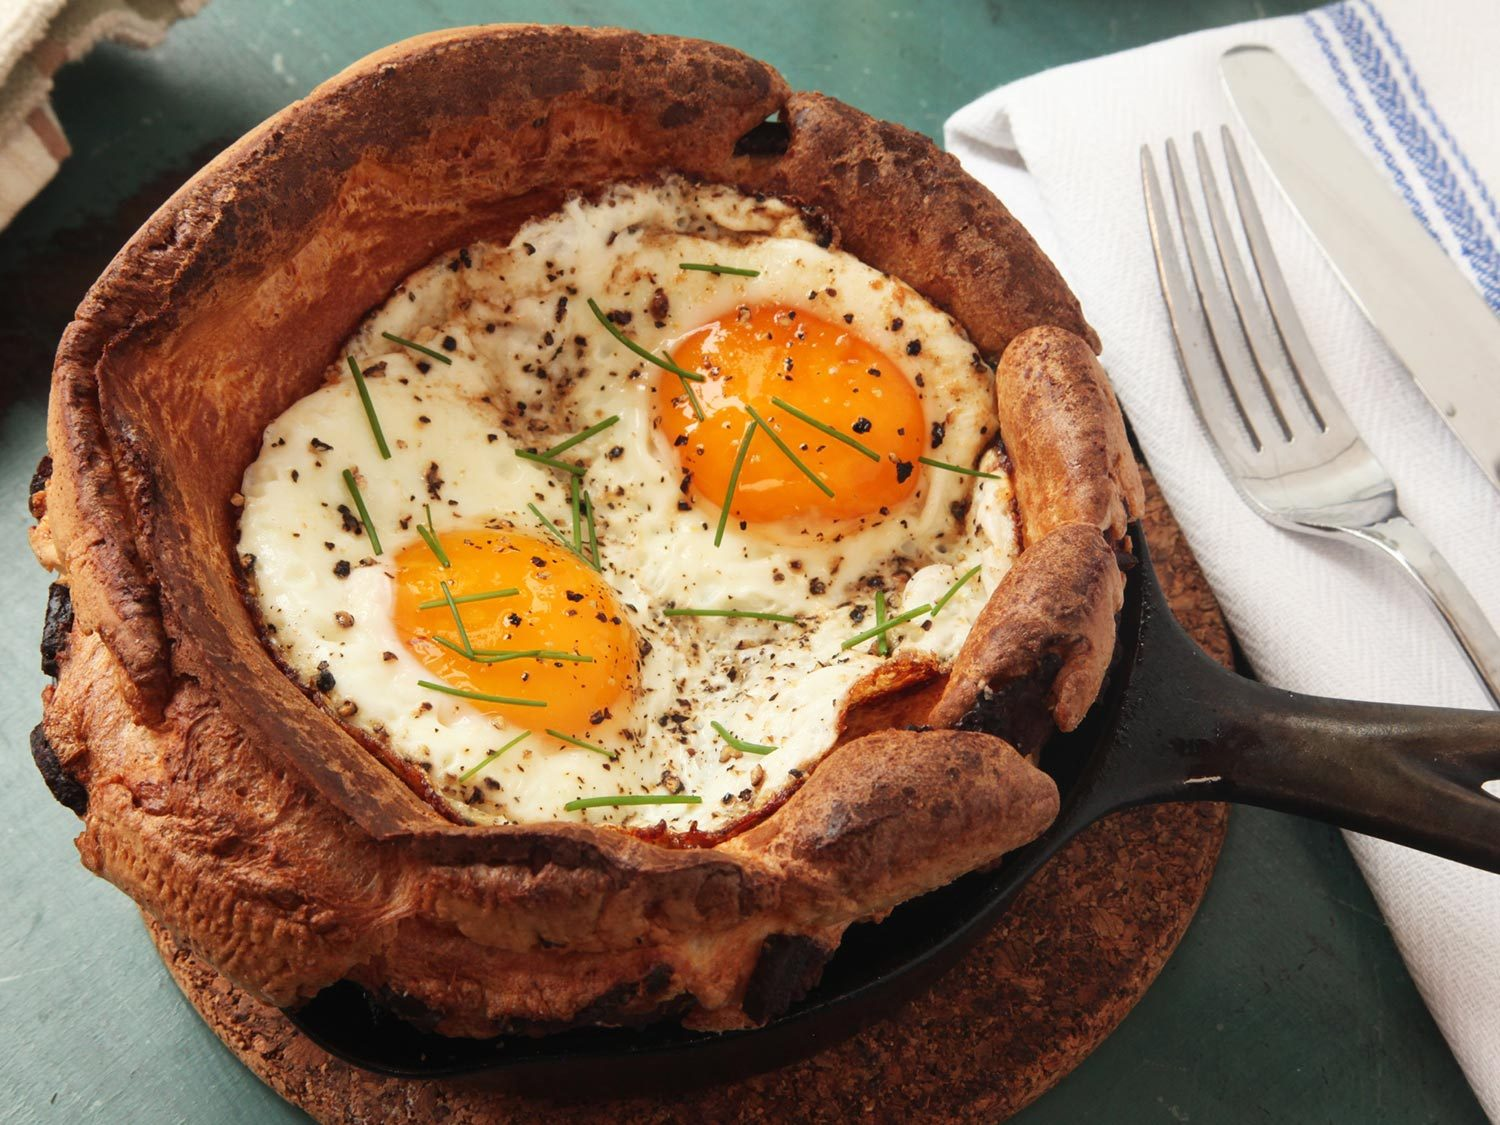 National Yorkshire pudding week receipe giveaway